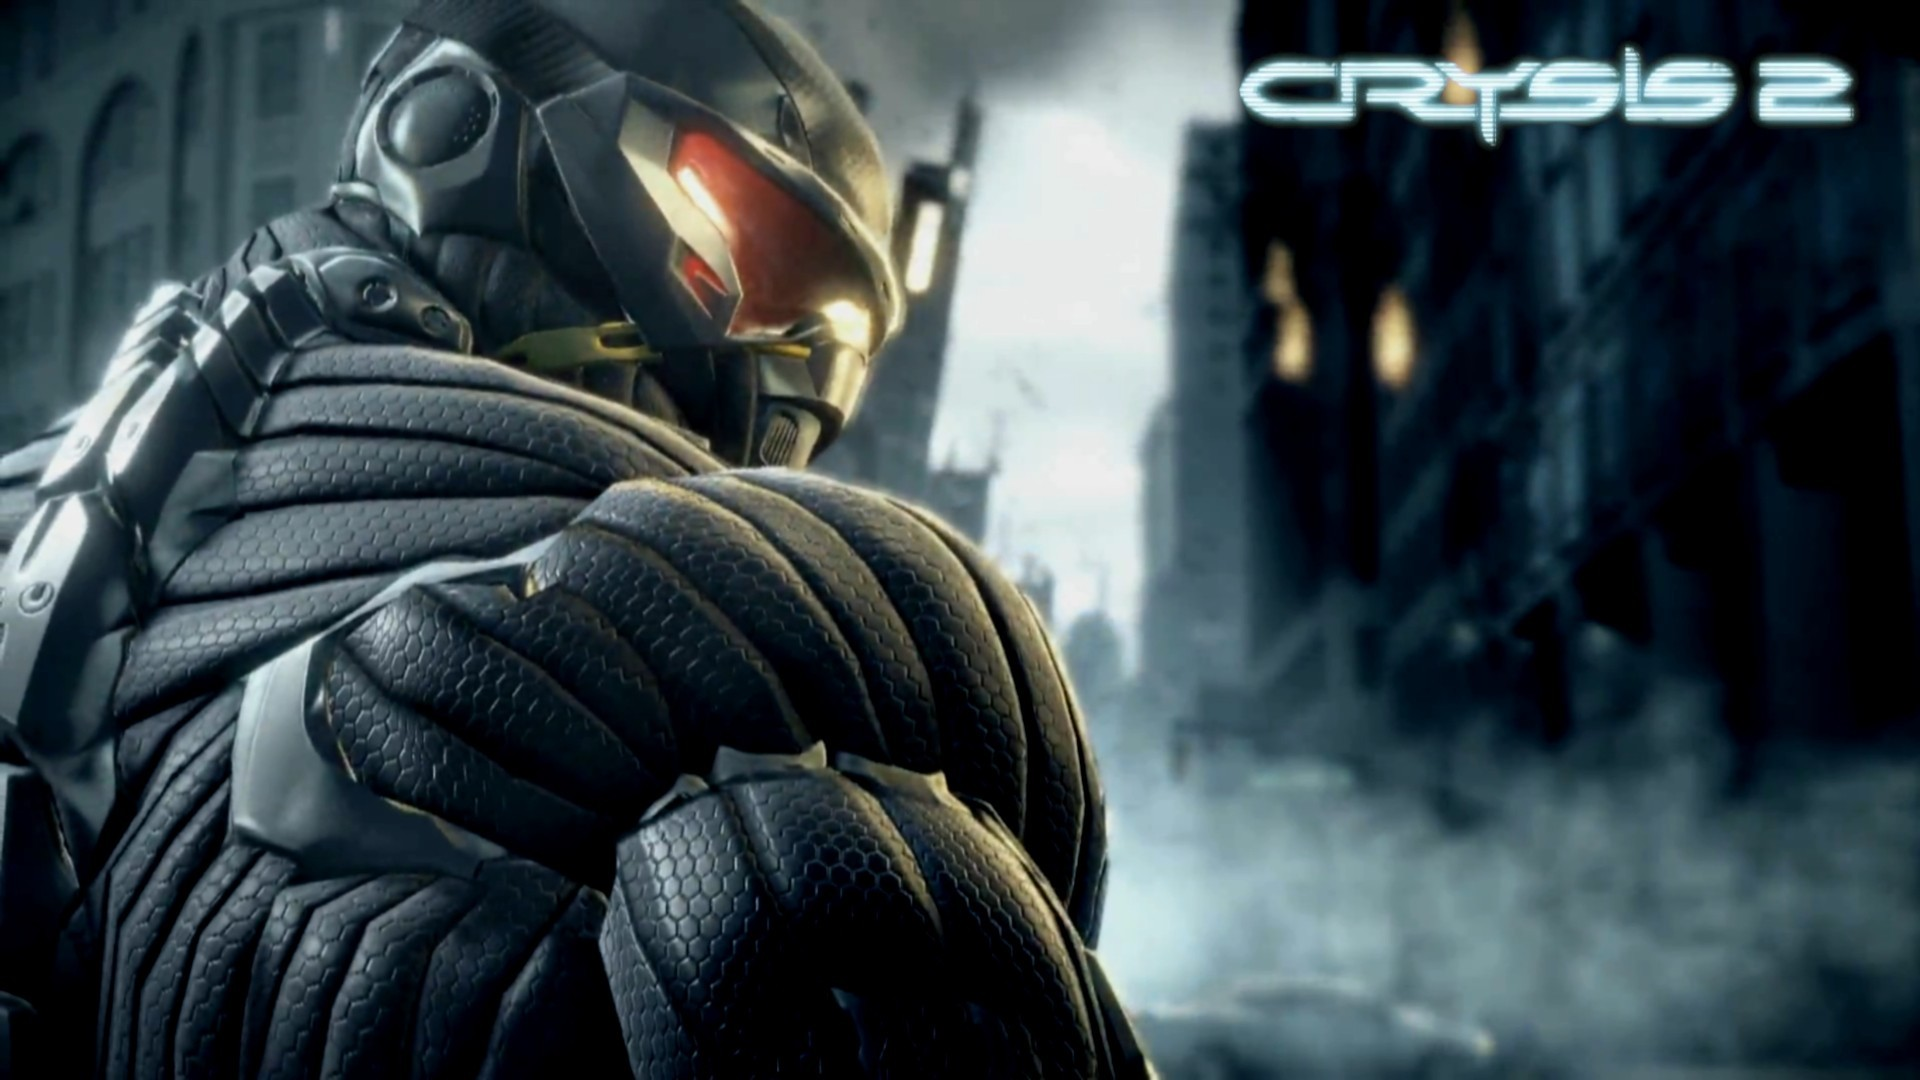 video games War crysis